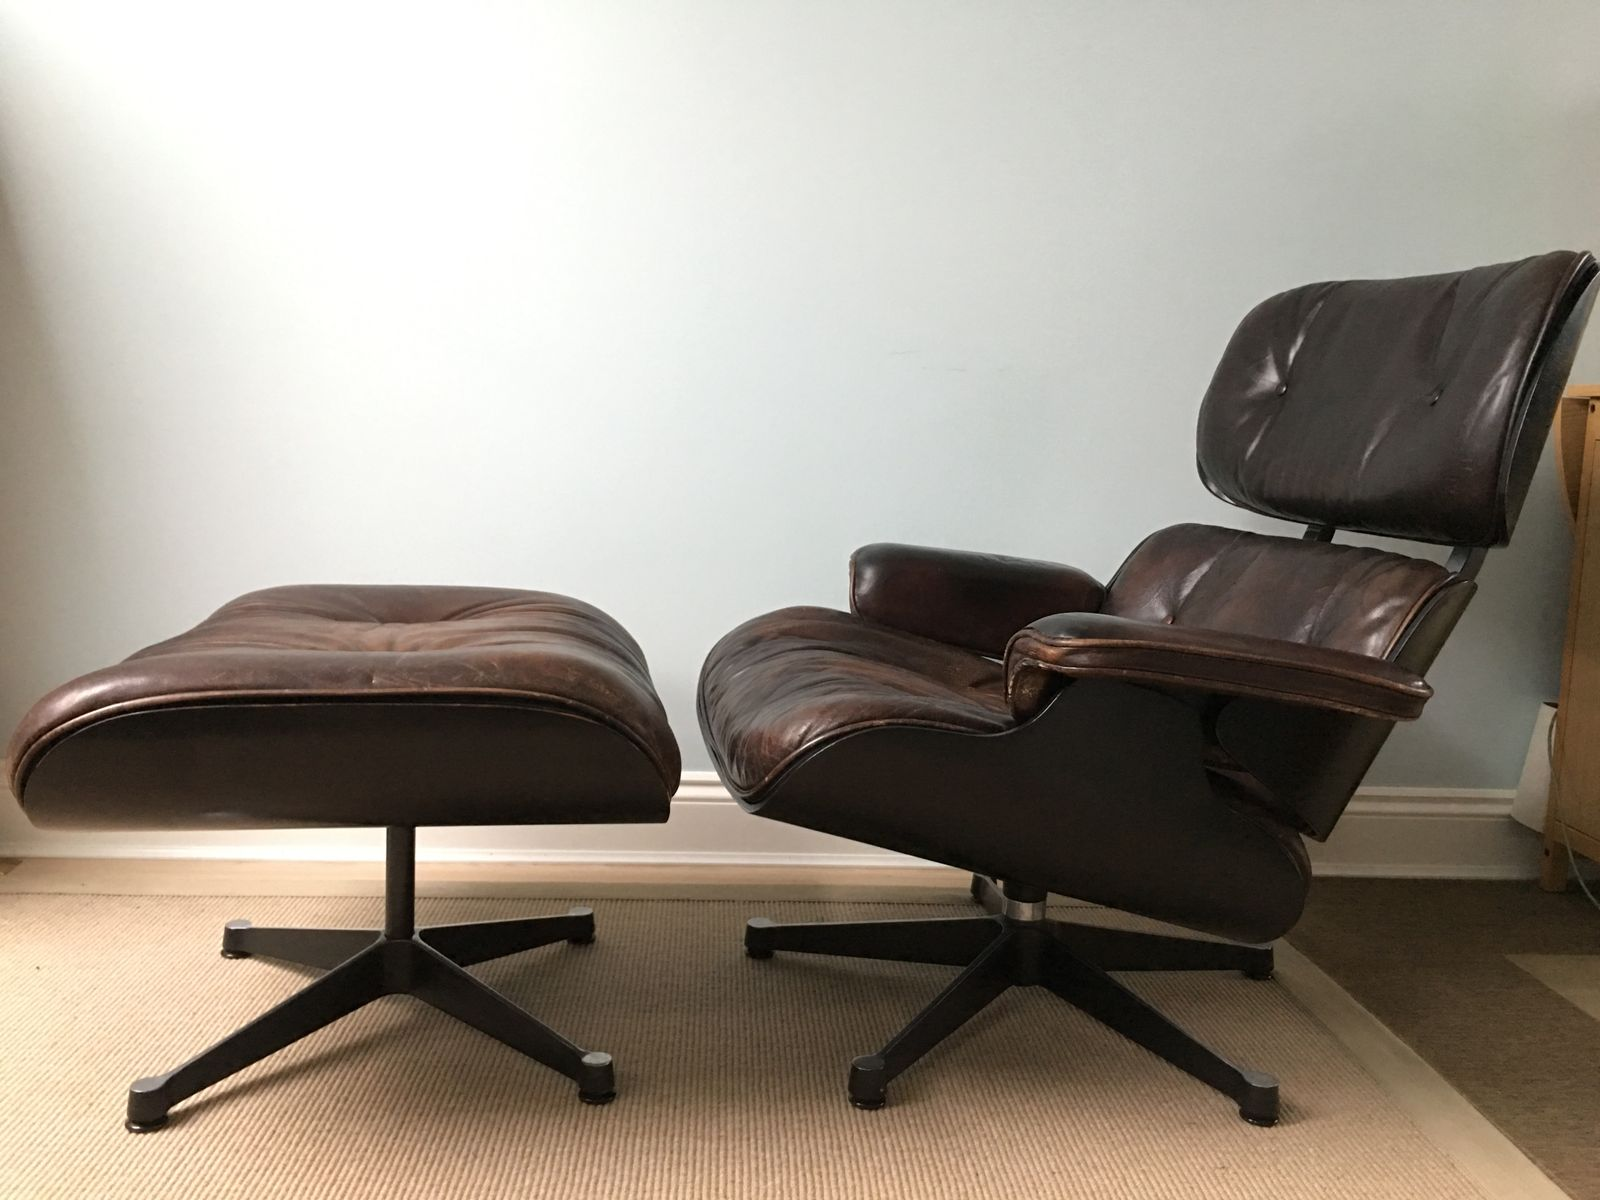 vintage 670 lounger and 671 ottoman by charles and ray eames for vitra for sale at pamono. Black Bedroom Furniture Sets. Home Design Ideas